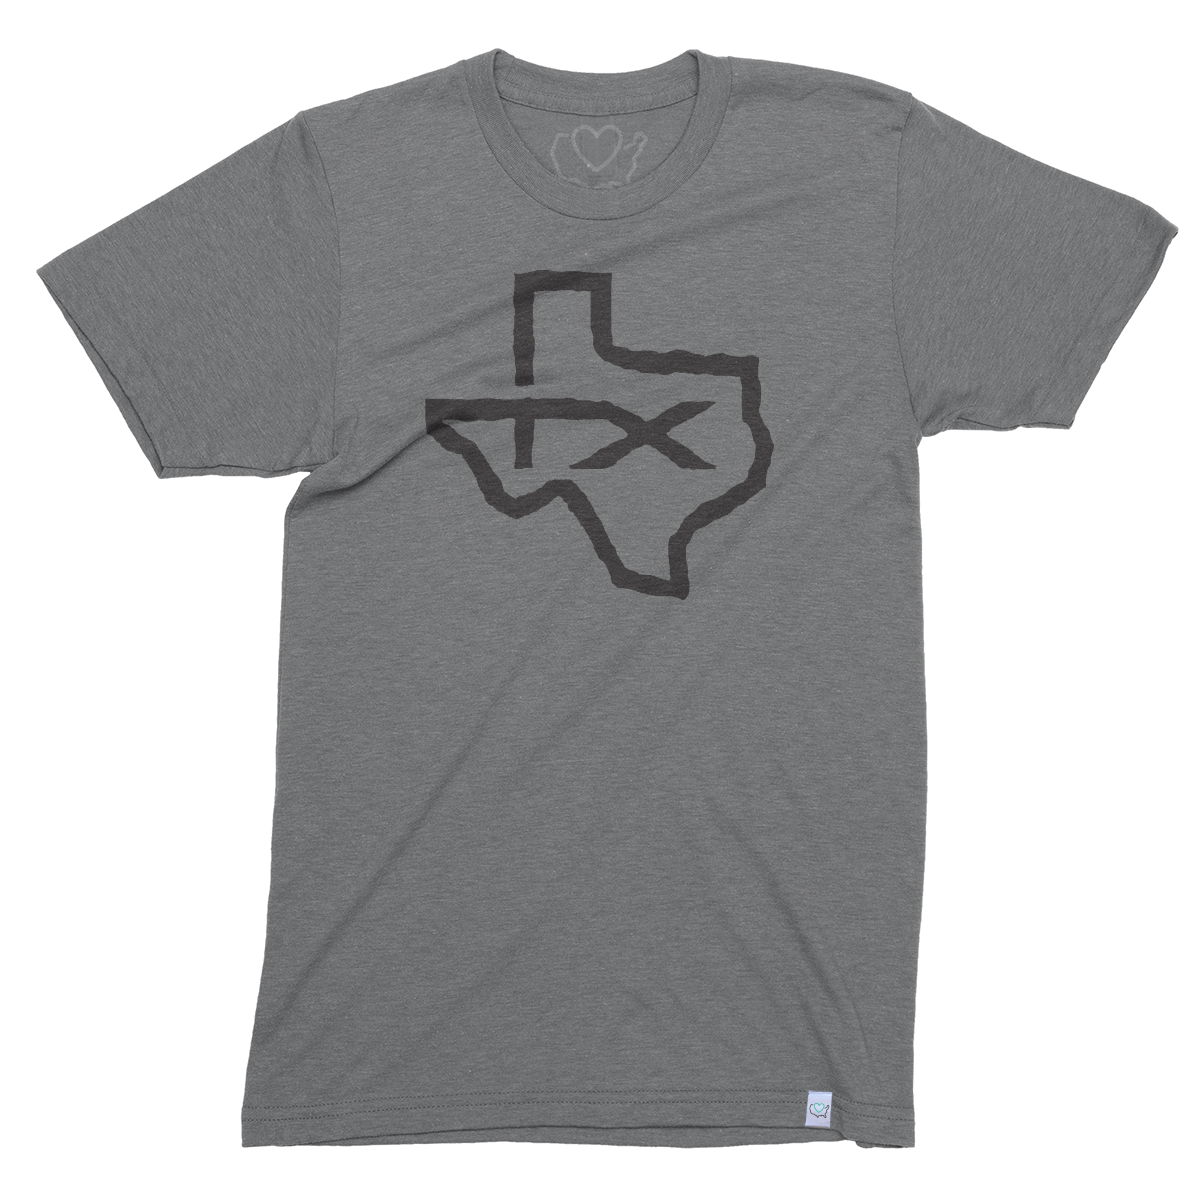 Branded by Texas